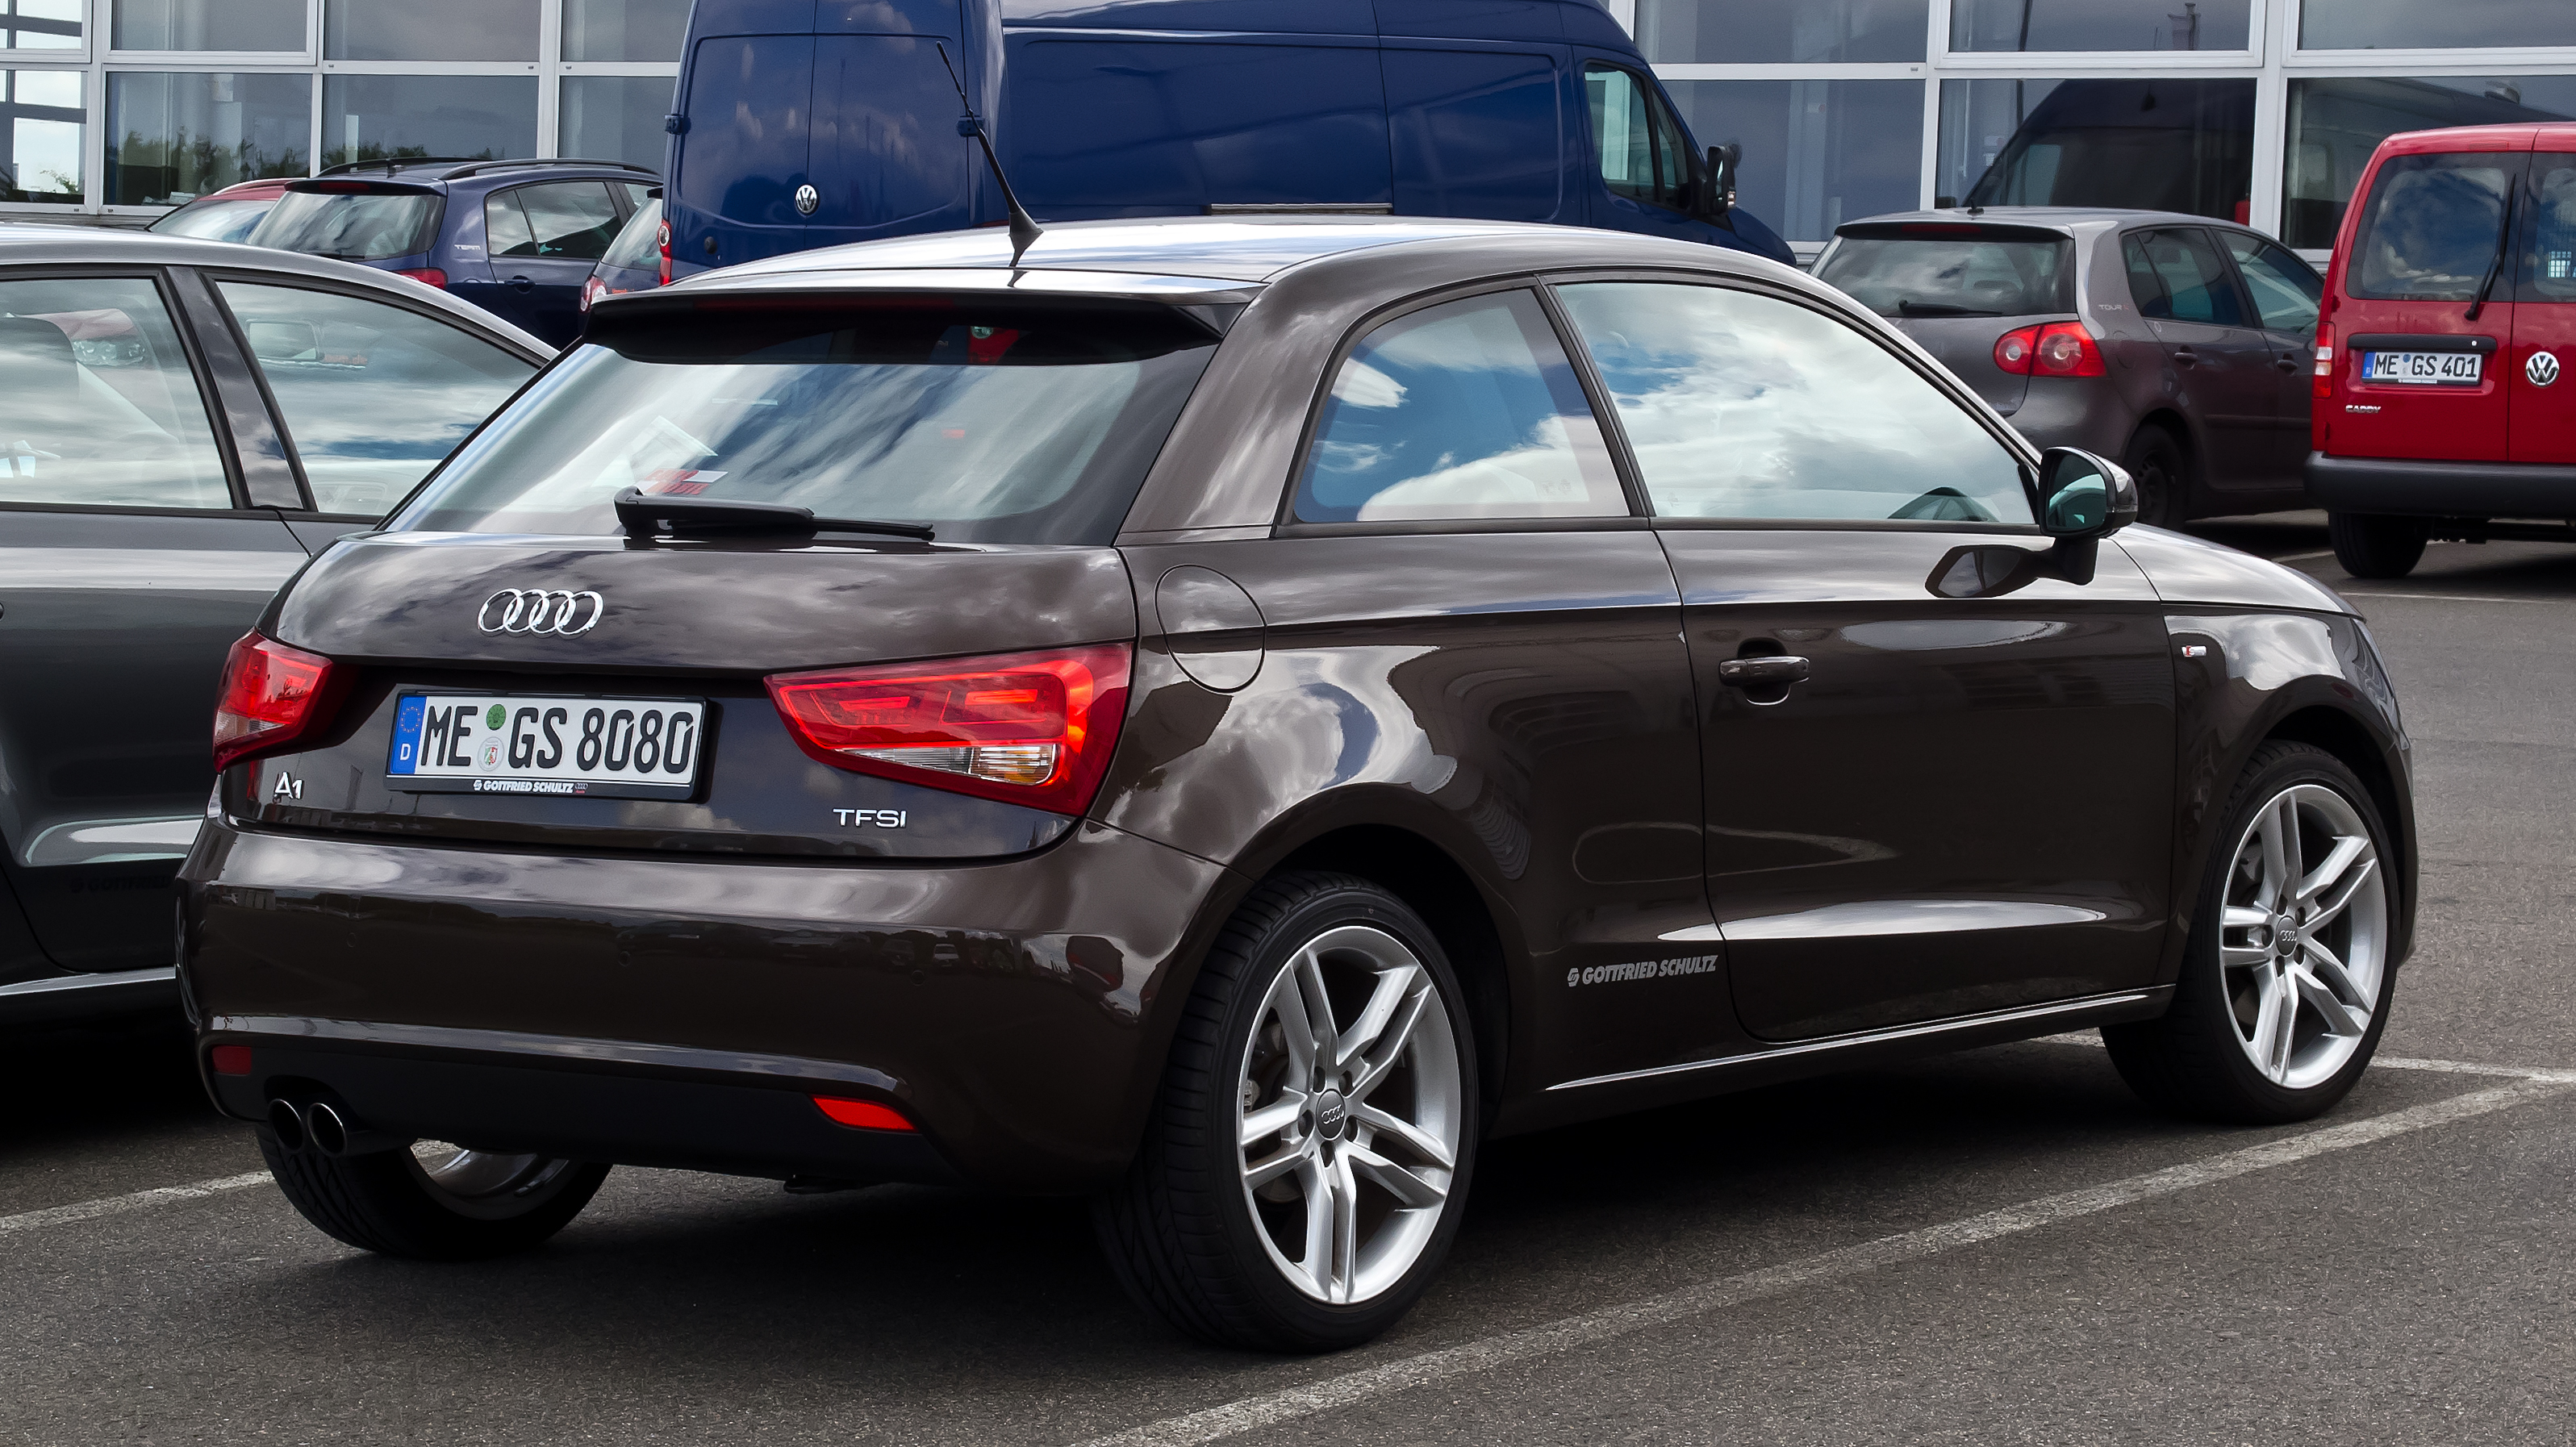 file audi a1 1 4 tfsi ambition s line heckansicht 21 juli 2012 wikimedia commons. Black Bedroom Furniture Sets. Home Design Ideas